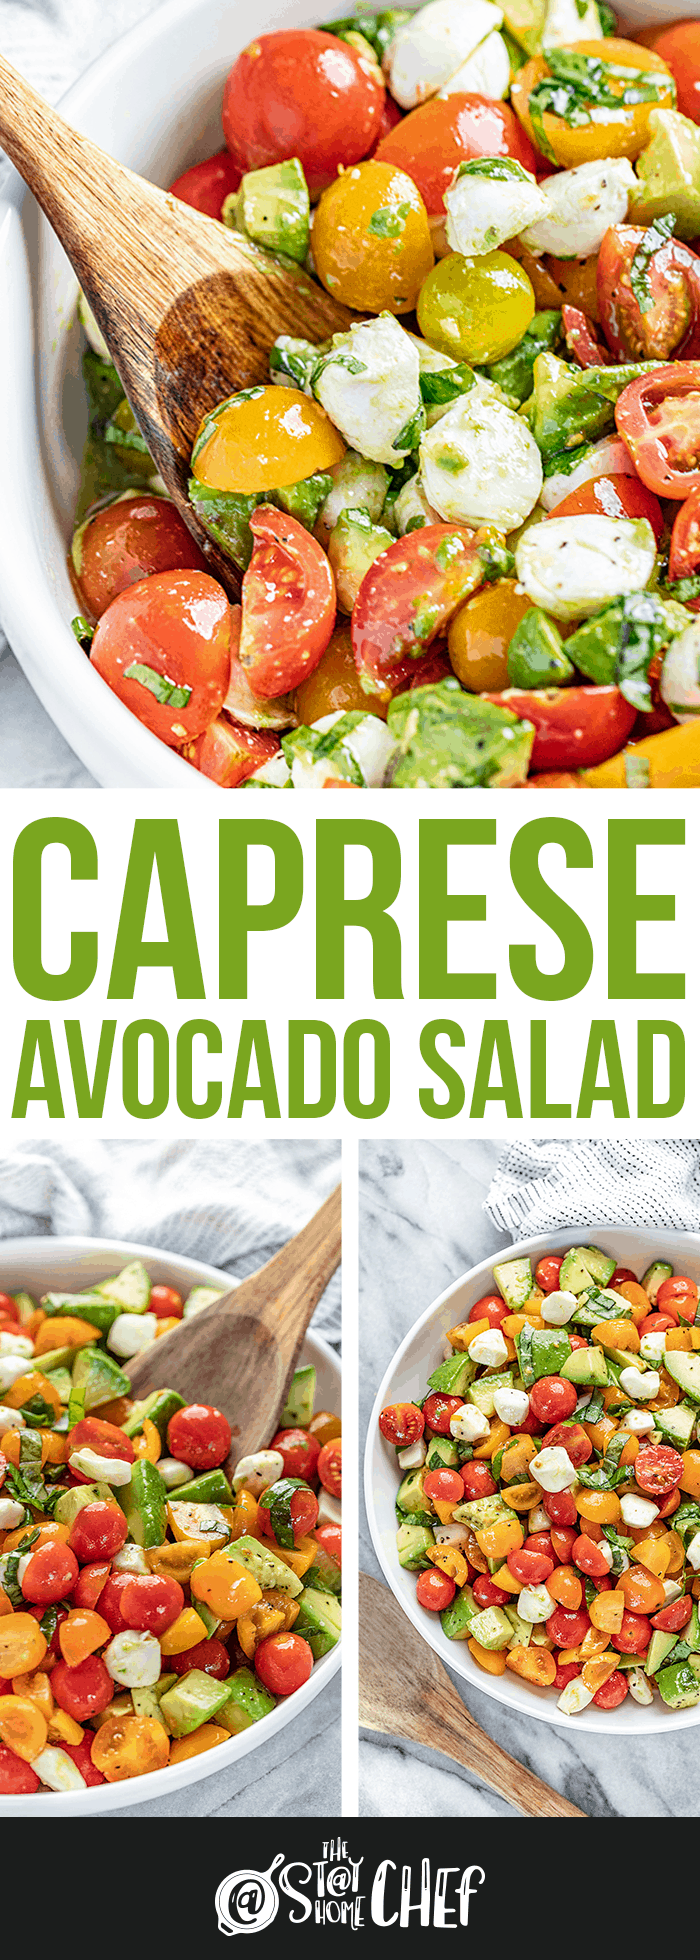 Overhead view of caprese avocado salad